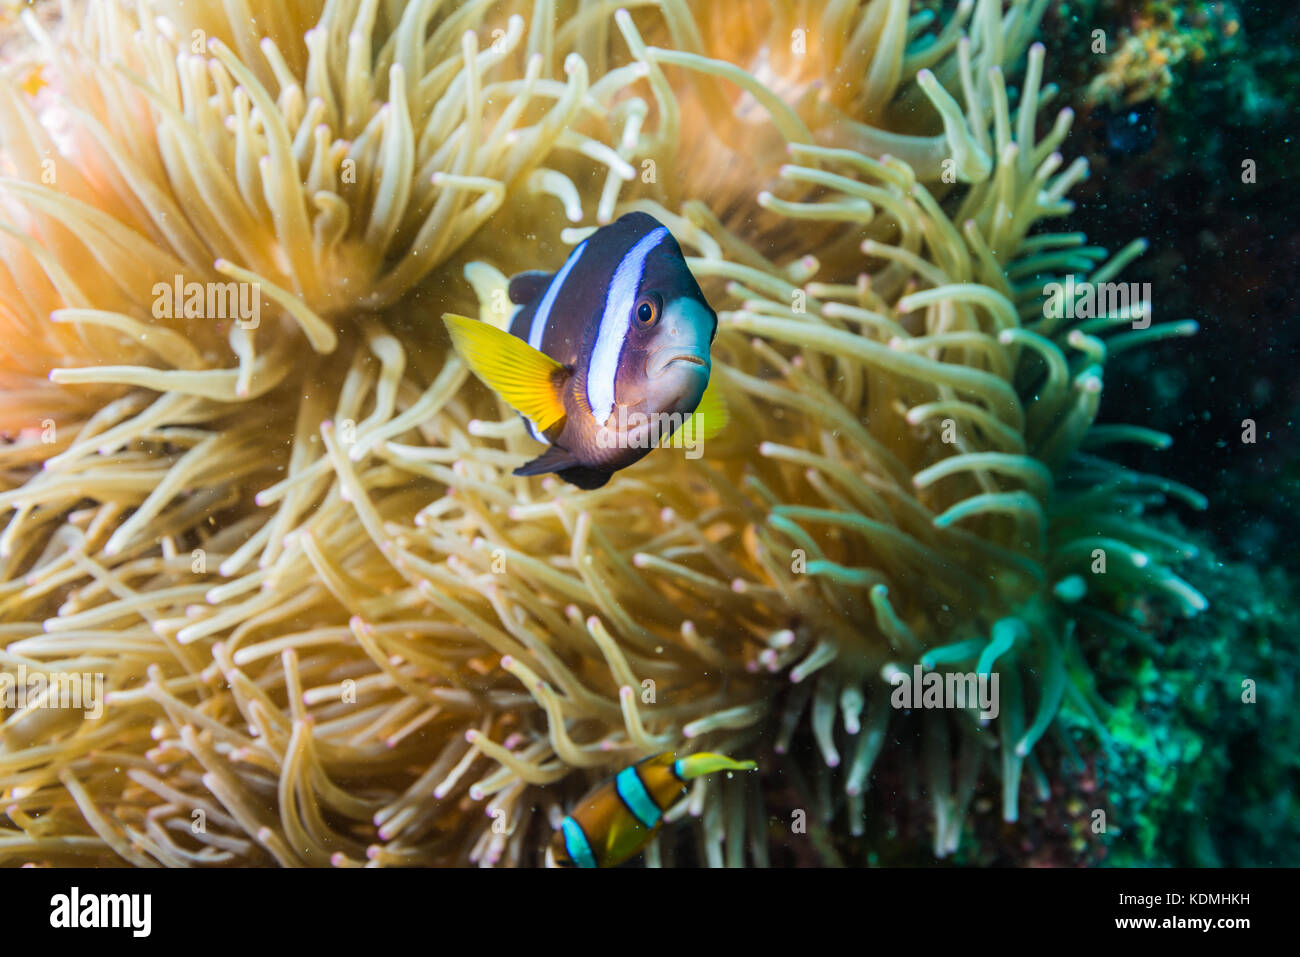 Yellowtail clownfish, Amphiprion clarkii (Bennett, 1830) and big sea anemone Exocoelactis actinostoloides(Wassilieff, - Stock Image